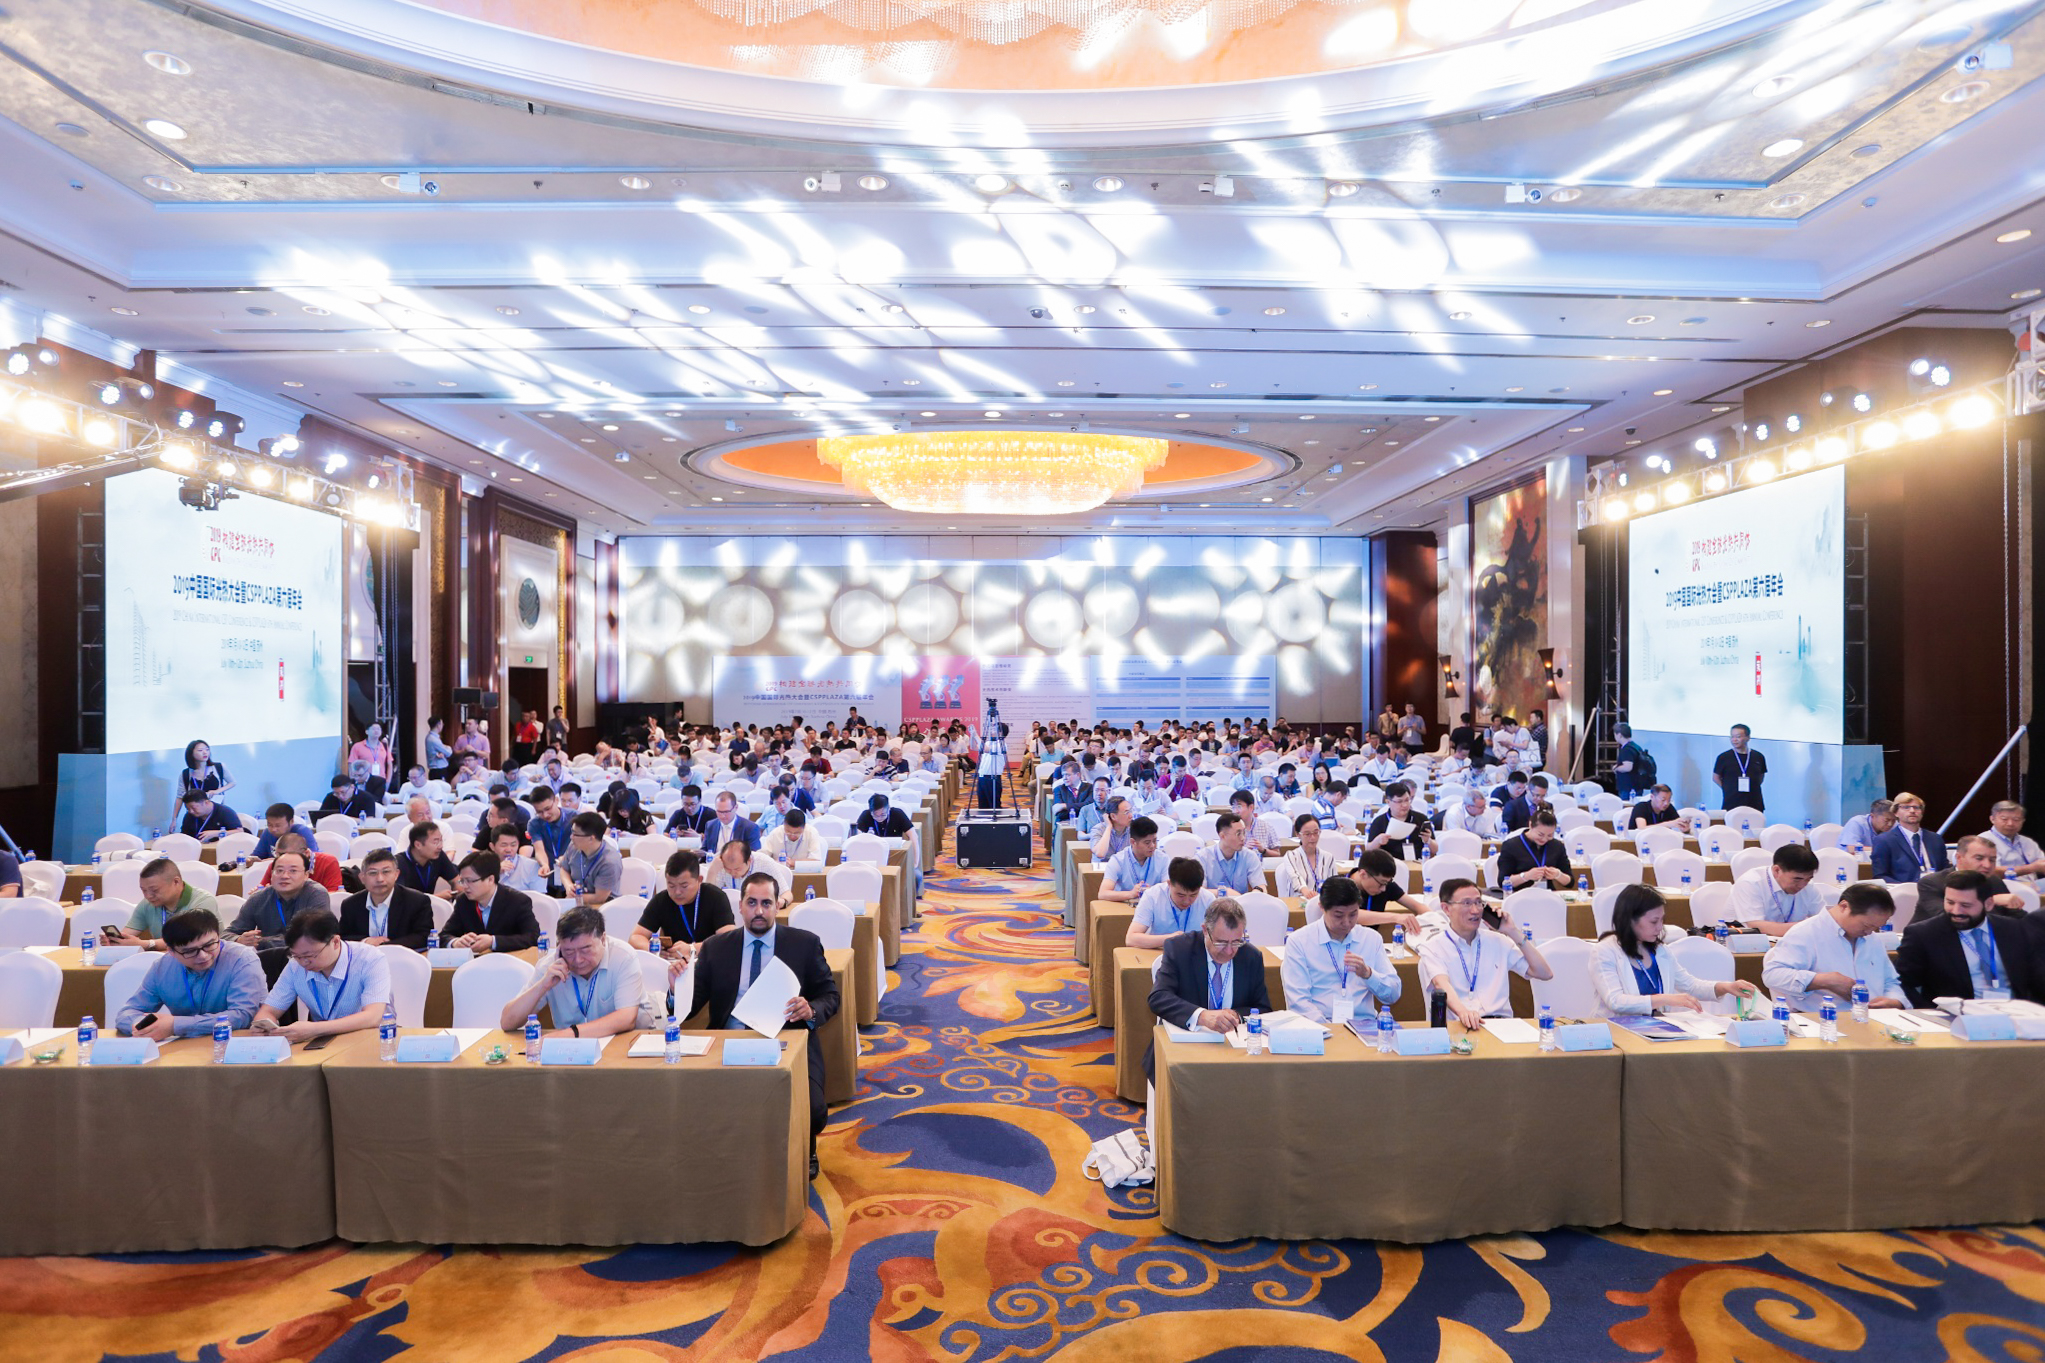 2020 China International CSP Conference  & CSPPLAZA 7th Annual Conference will be held in June 2020